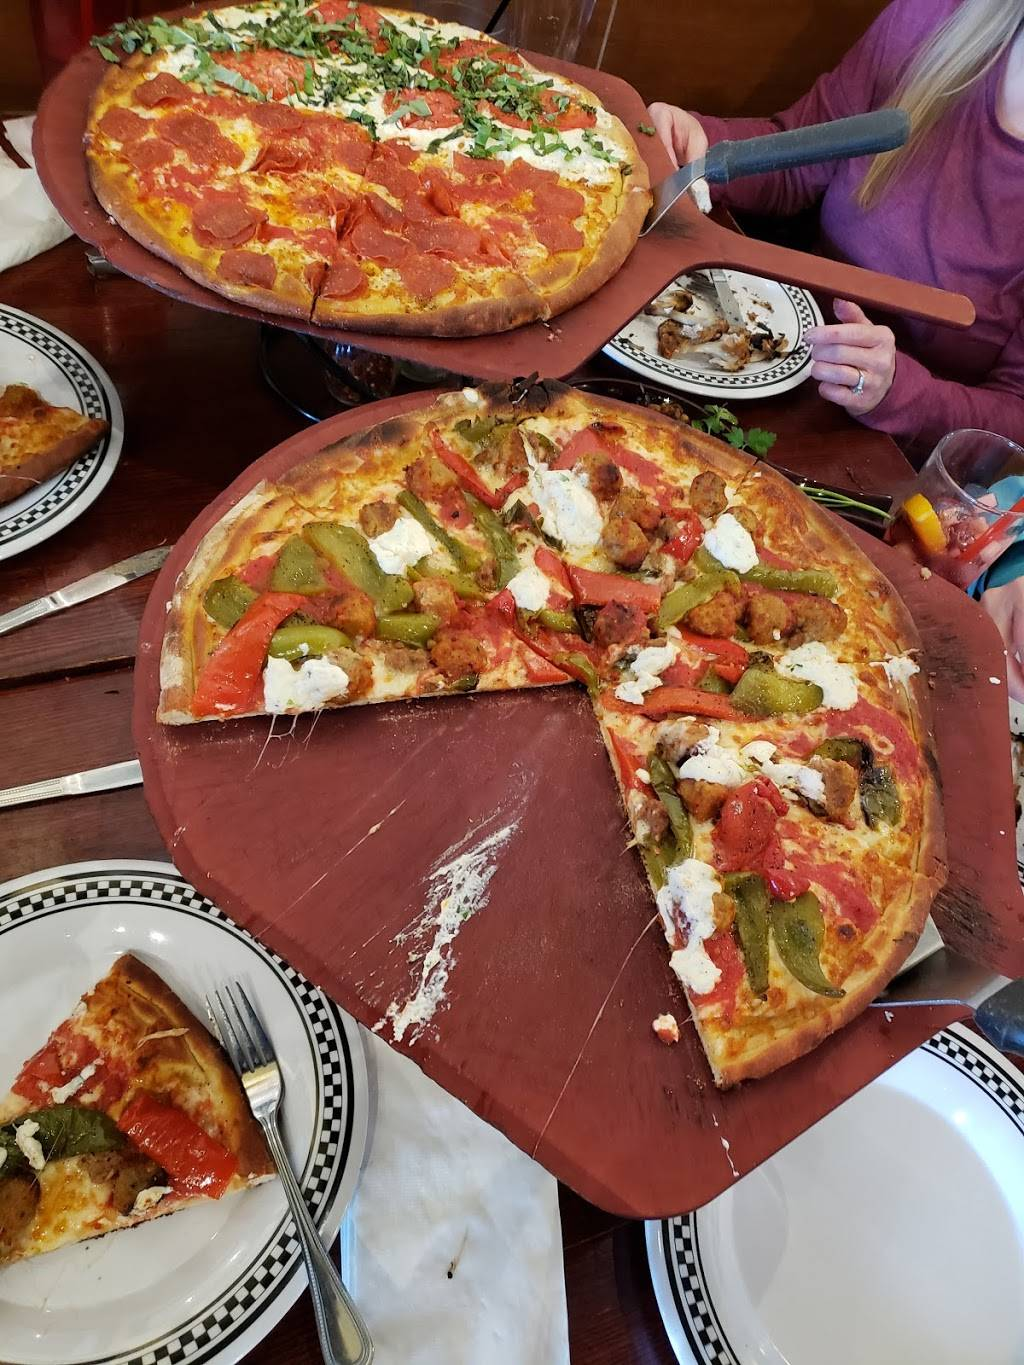 Anthonys Coal Fired Pizza | meal takeaway | 123 Swedesford Rd, Exton, PA 19341, USA | 6105941900 OR +1 610-594-1900